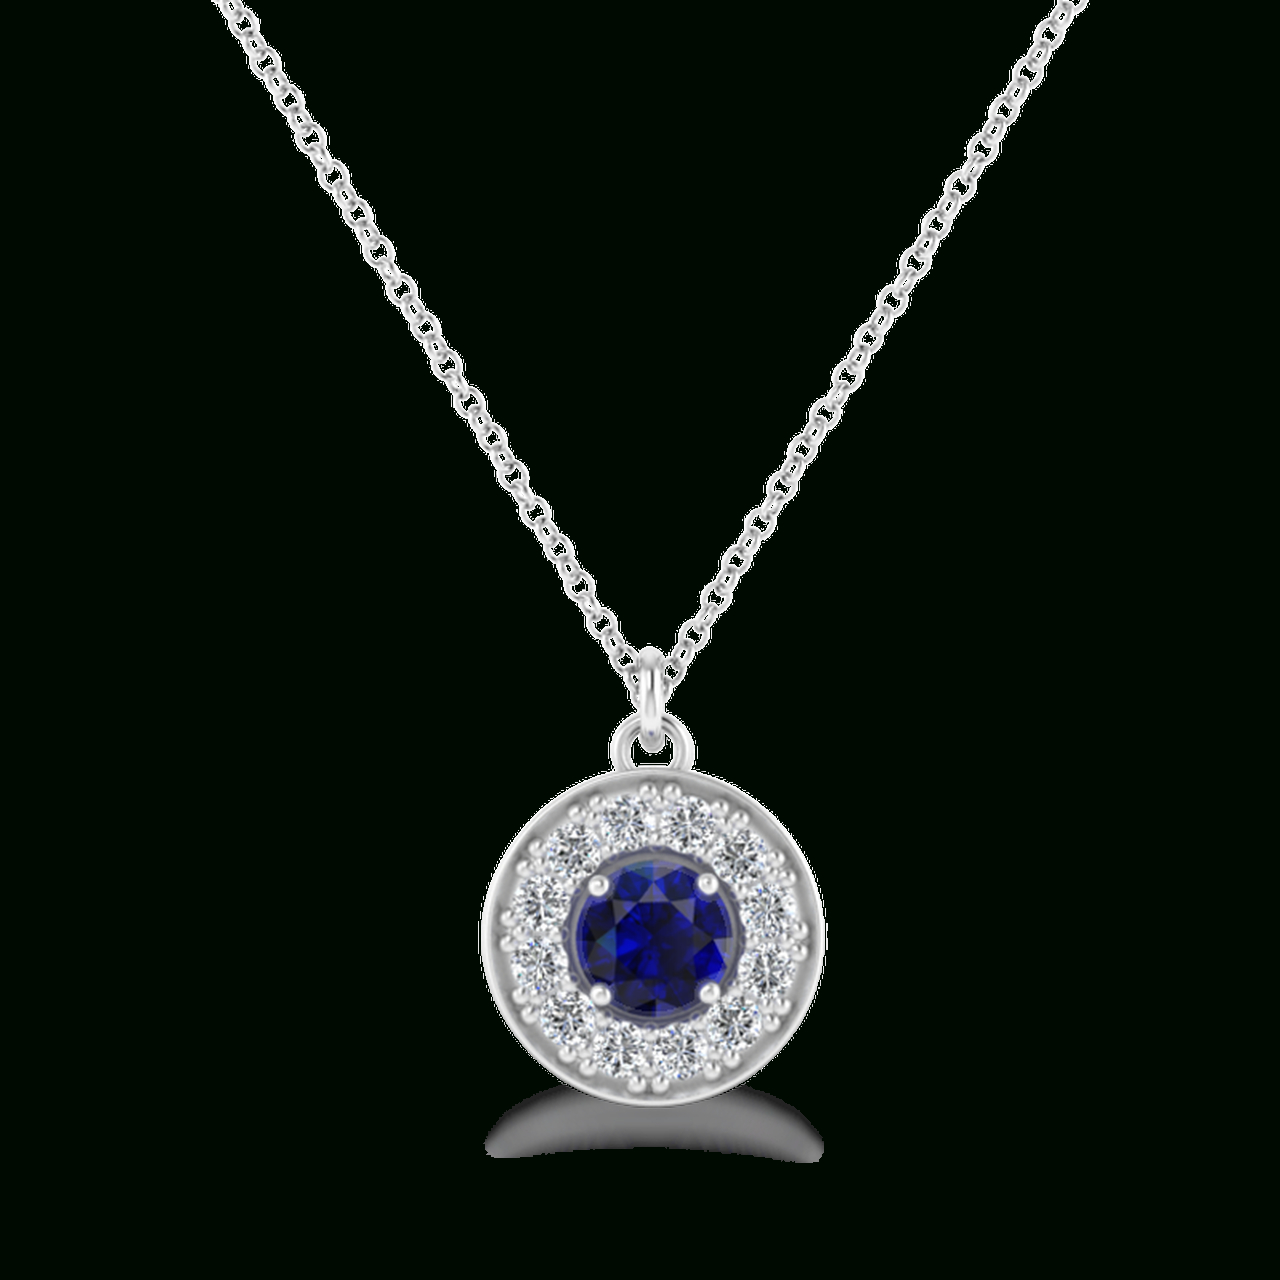 Megan Diamond & Sapphire Halo Necklace Regarding Most Recently Released Square Sparkle Halo Pendant Necklaces (View 19 of 25)